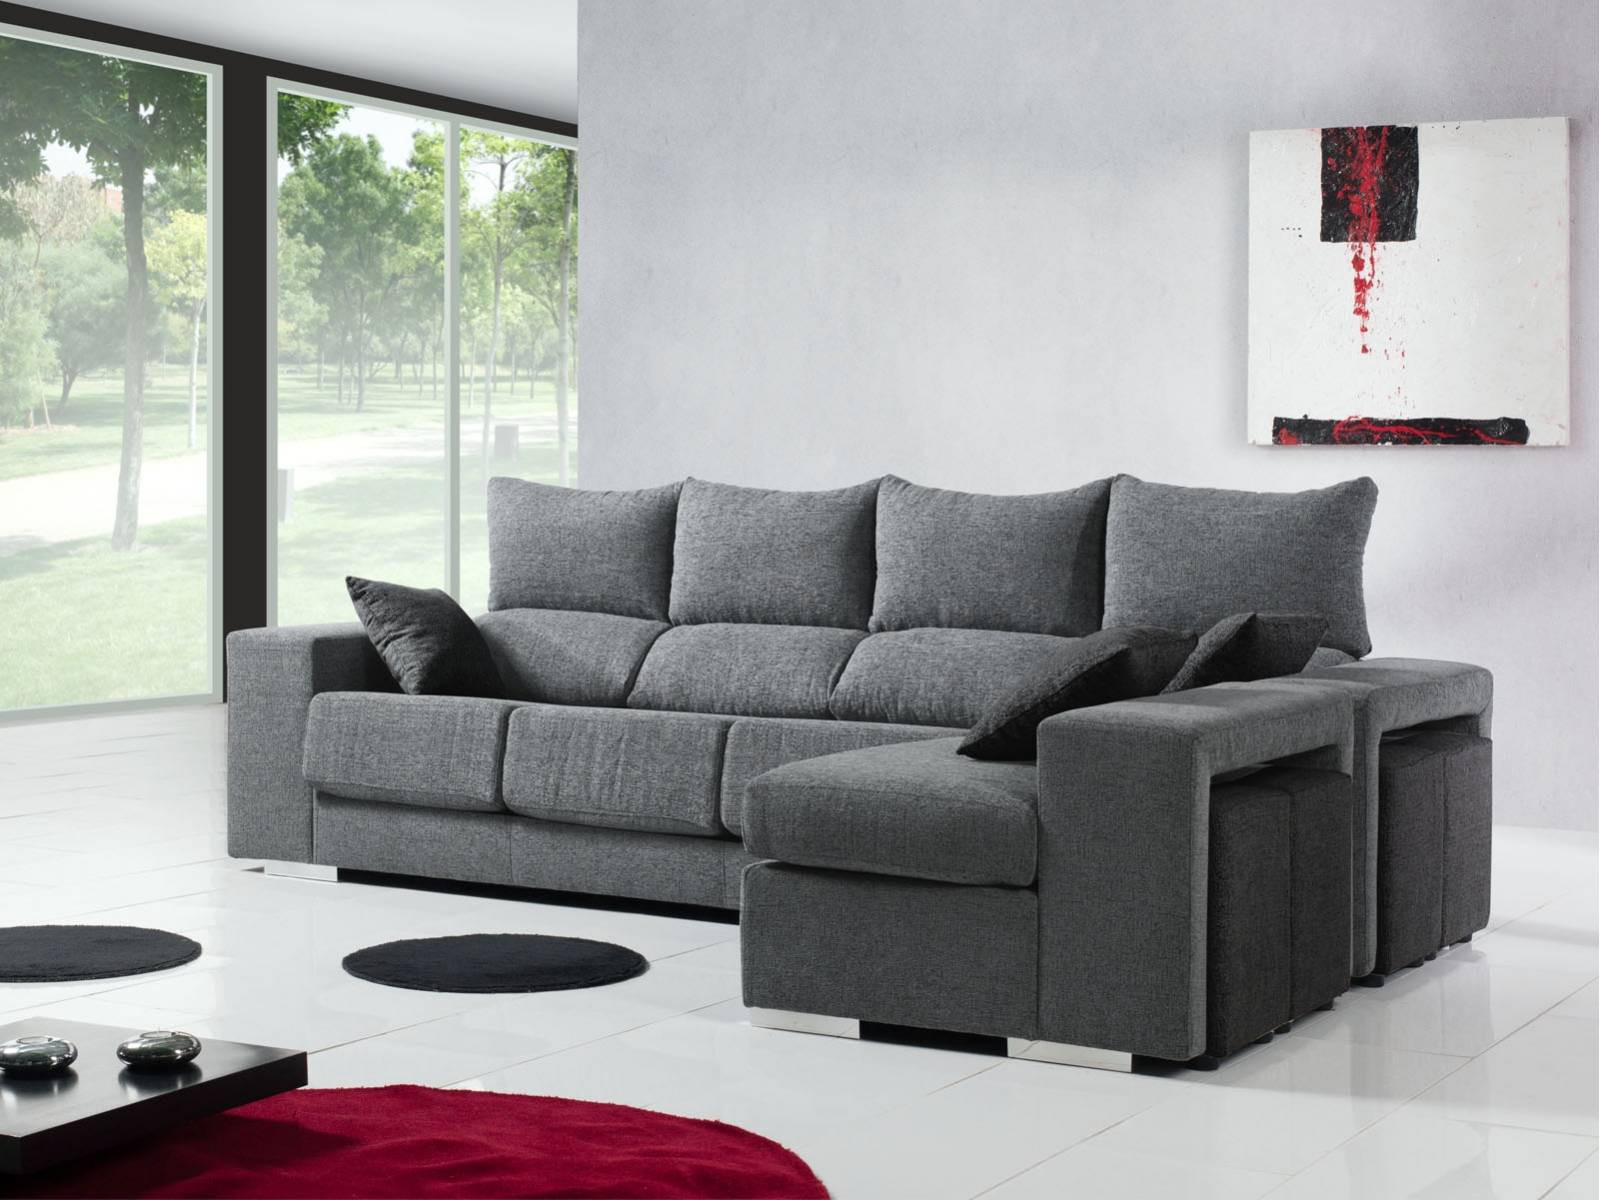 sofa con chaise longue reversible y 4 puff